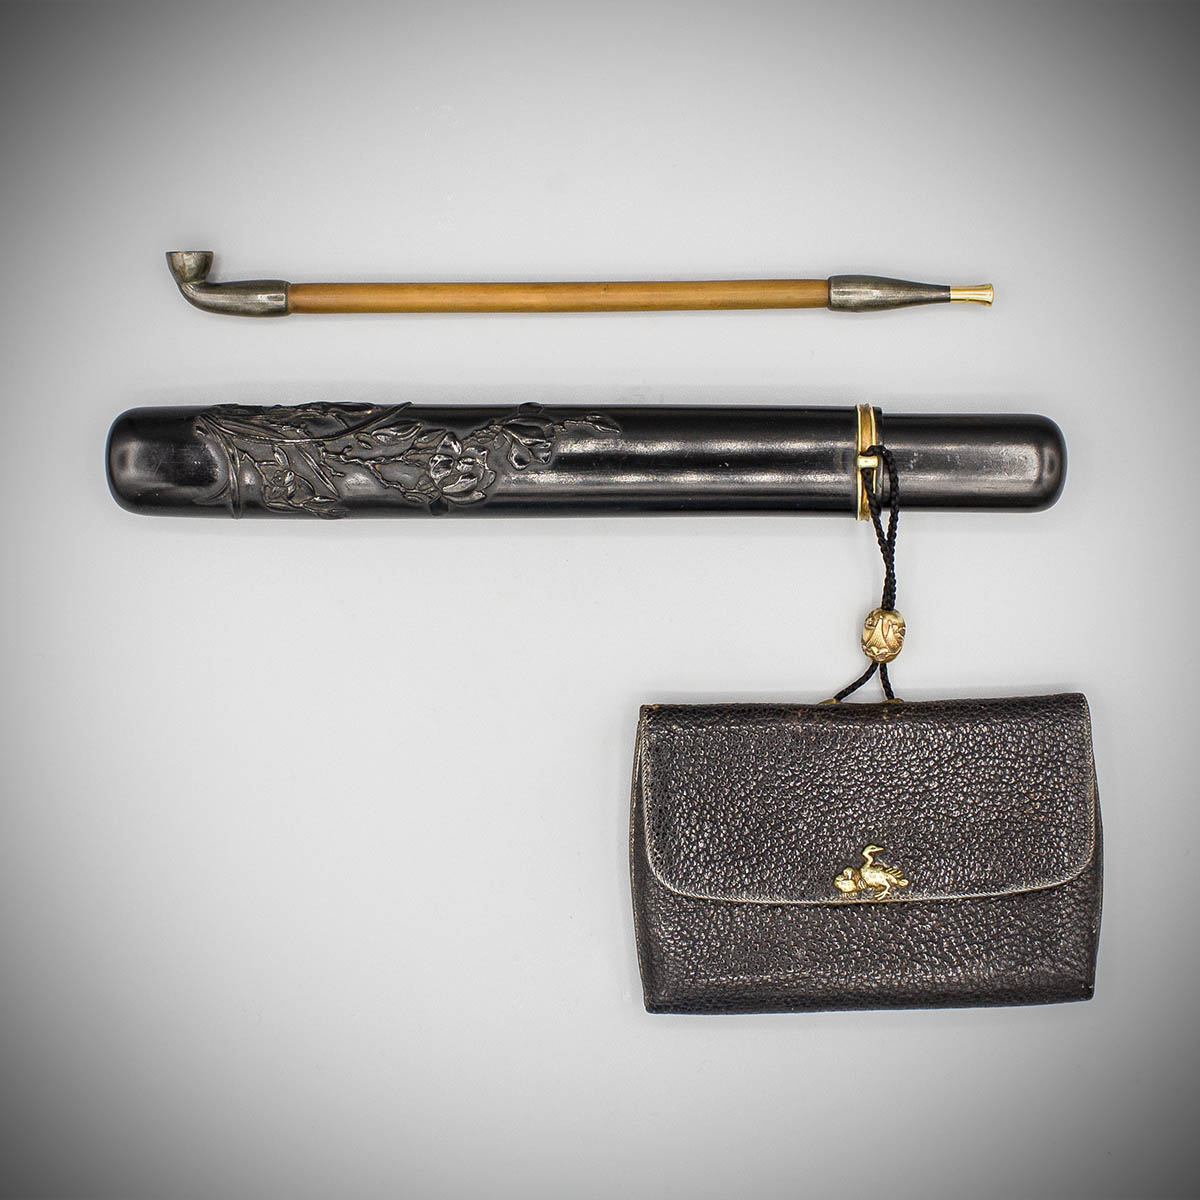 An elegant ebony pipe case with leather pouch, MR3672_v.1-2